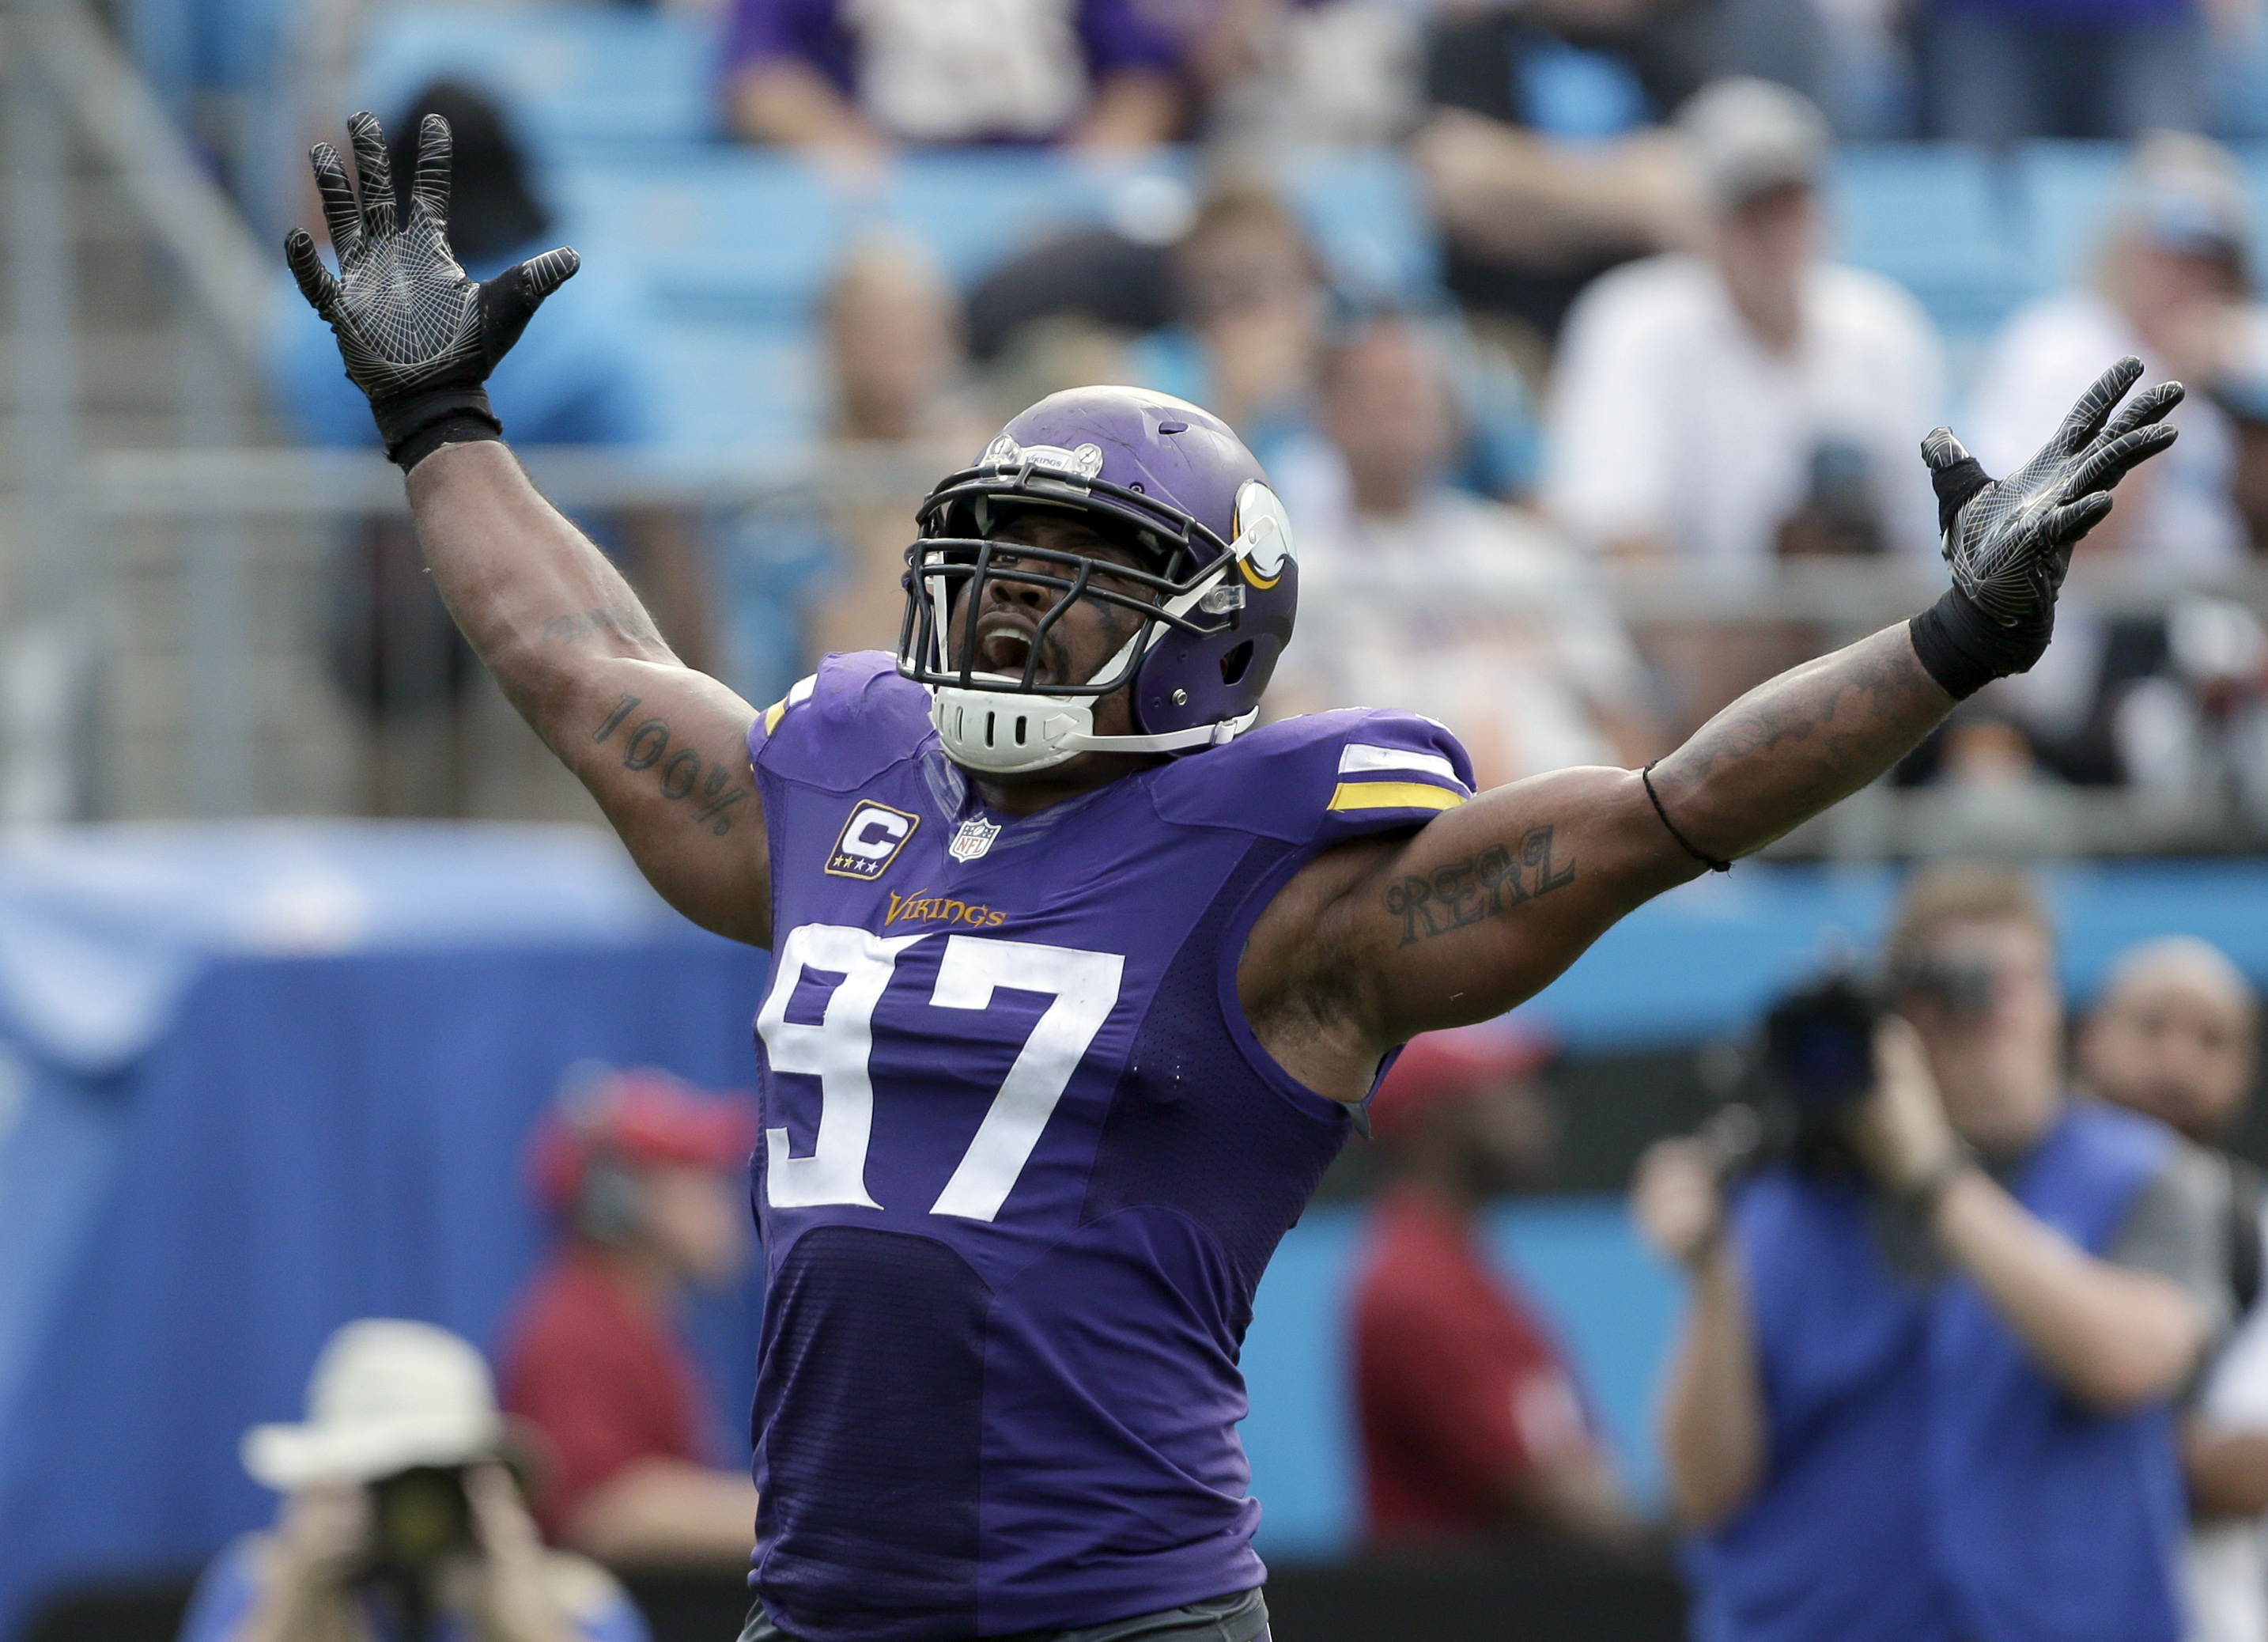 FILE - In this Sept. 25, 2016, file photo, Minnesota Vikings' Everson Griffen celebrates after a sack against the Carolina Panthers during an NFL football game in Charlotte, N.C. A mere five weeks into the NFL schedule and theres already been a massive se